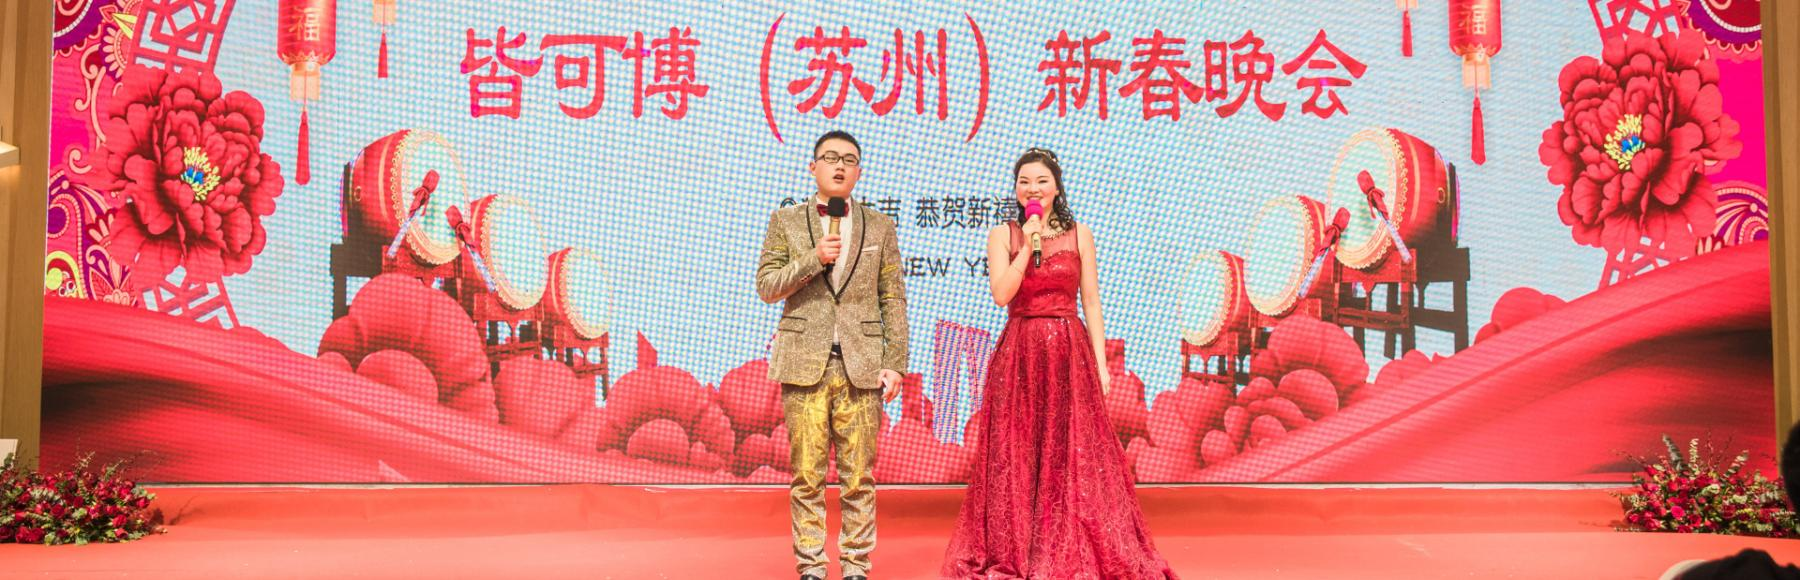 Man dressed in suit and women dressed in a red long gown stand on a stage